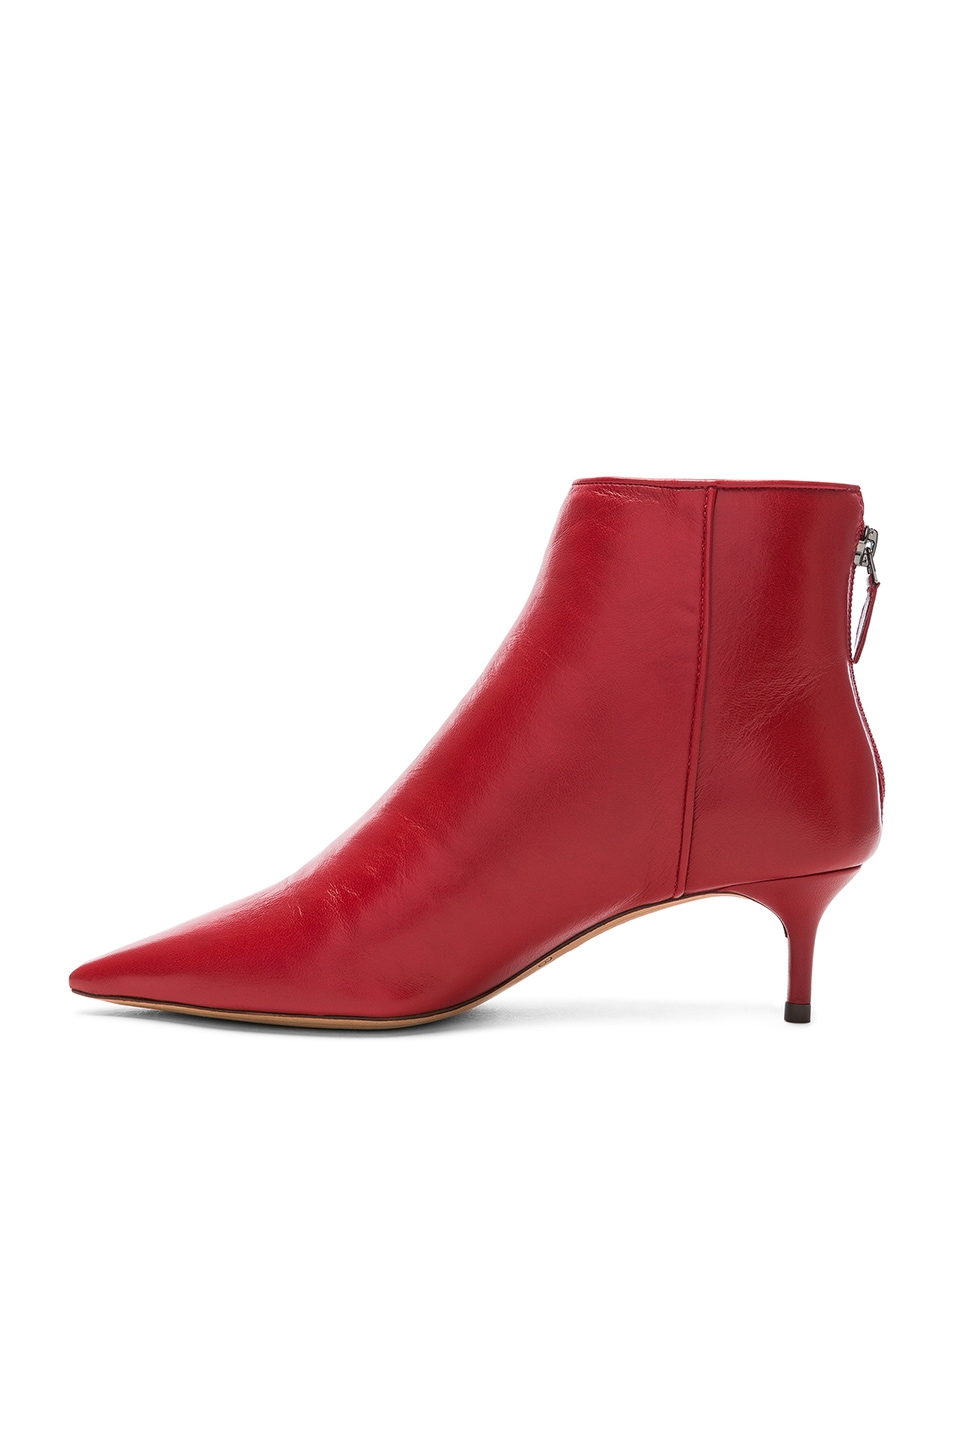 Image 5 of Alexandre Birman Leather Kittie Ankle Boots in Flame